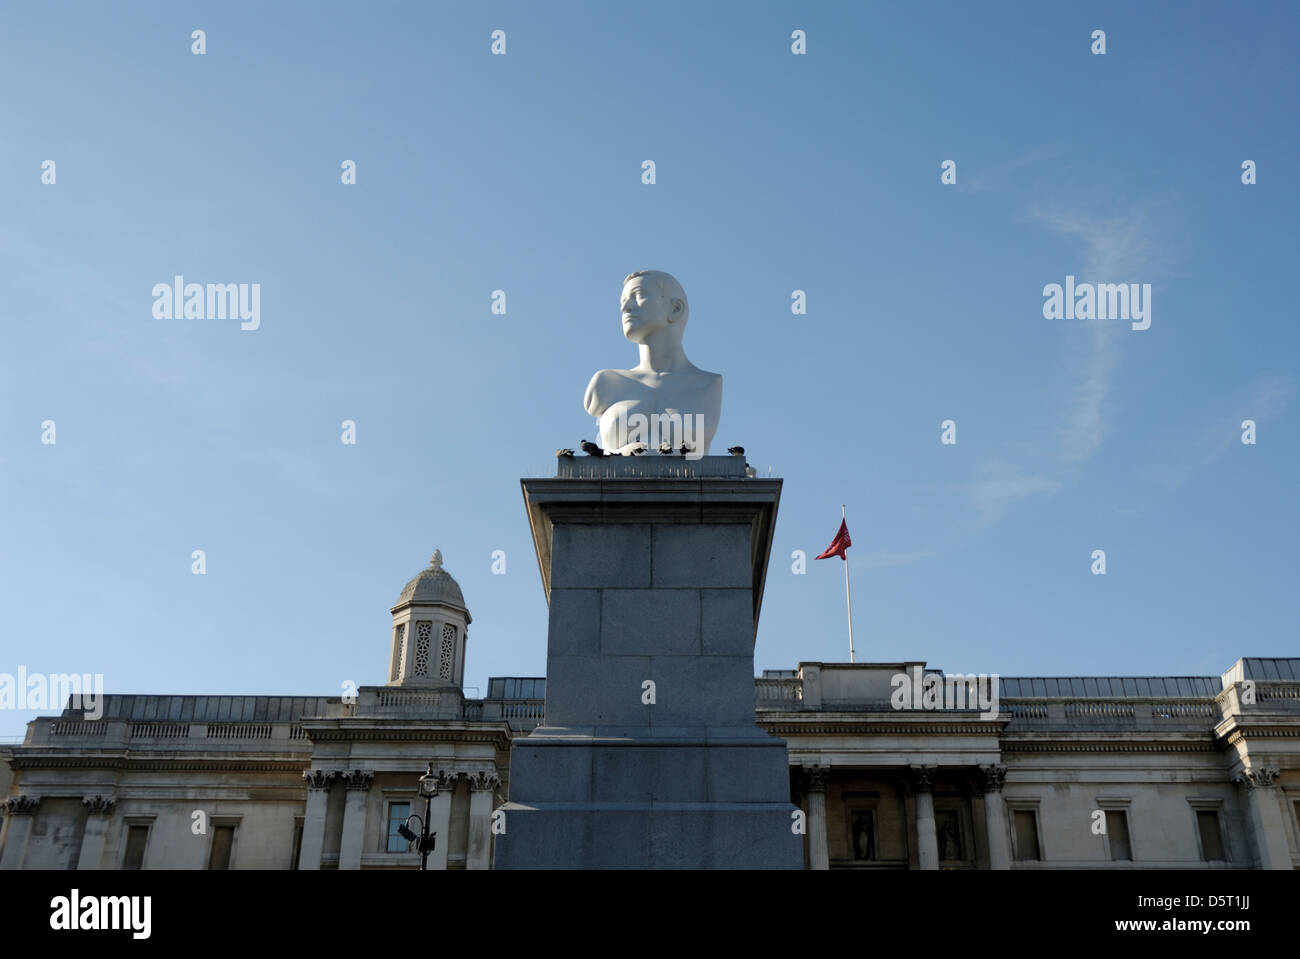 Alison Lapper Pregnant, statue on temporary display in Trafalgar Square, London, England, Britain, UK, - Stock Image